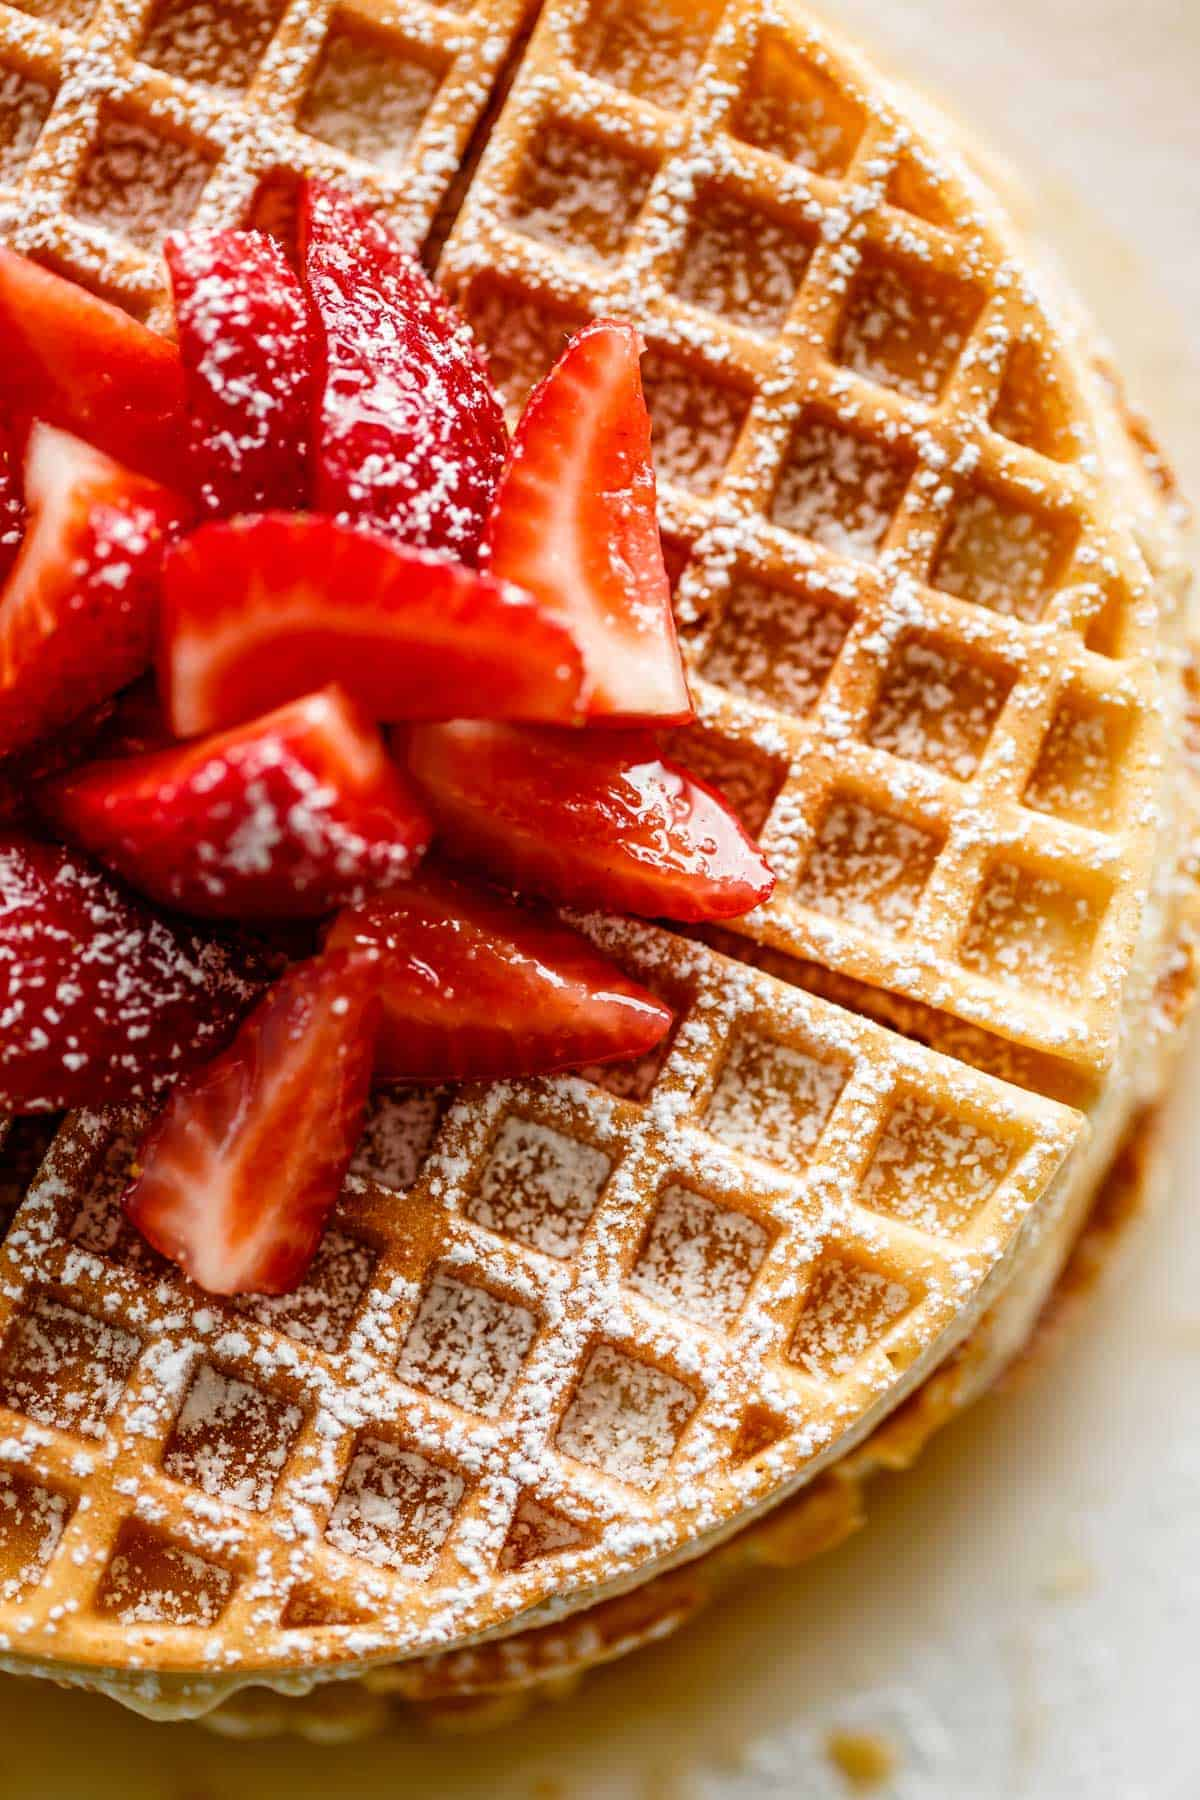 Best Belgian Waffles Recipe with powdered sugar | #belgiumwaffles #recipe #breakfast